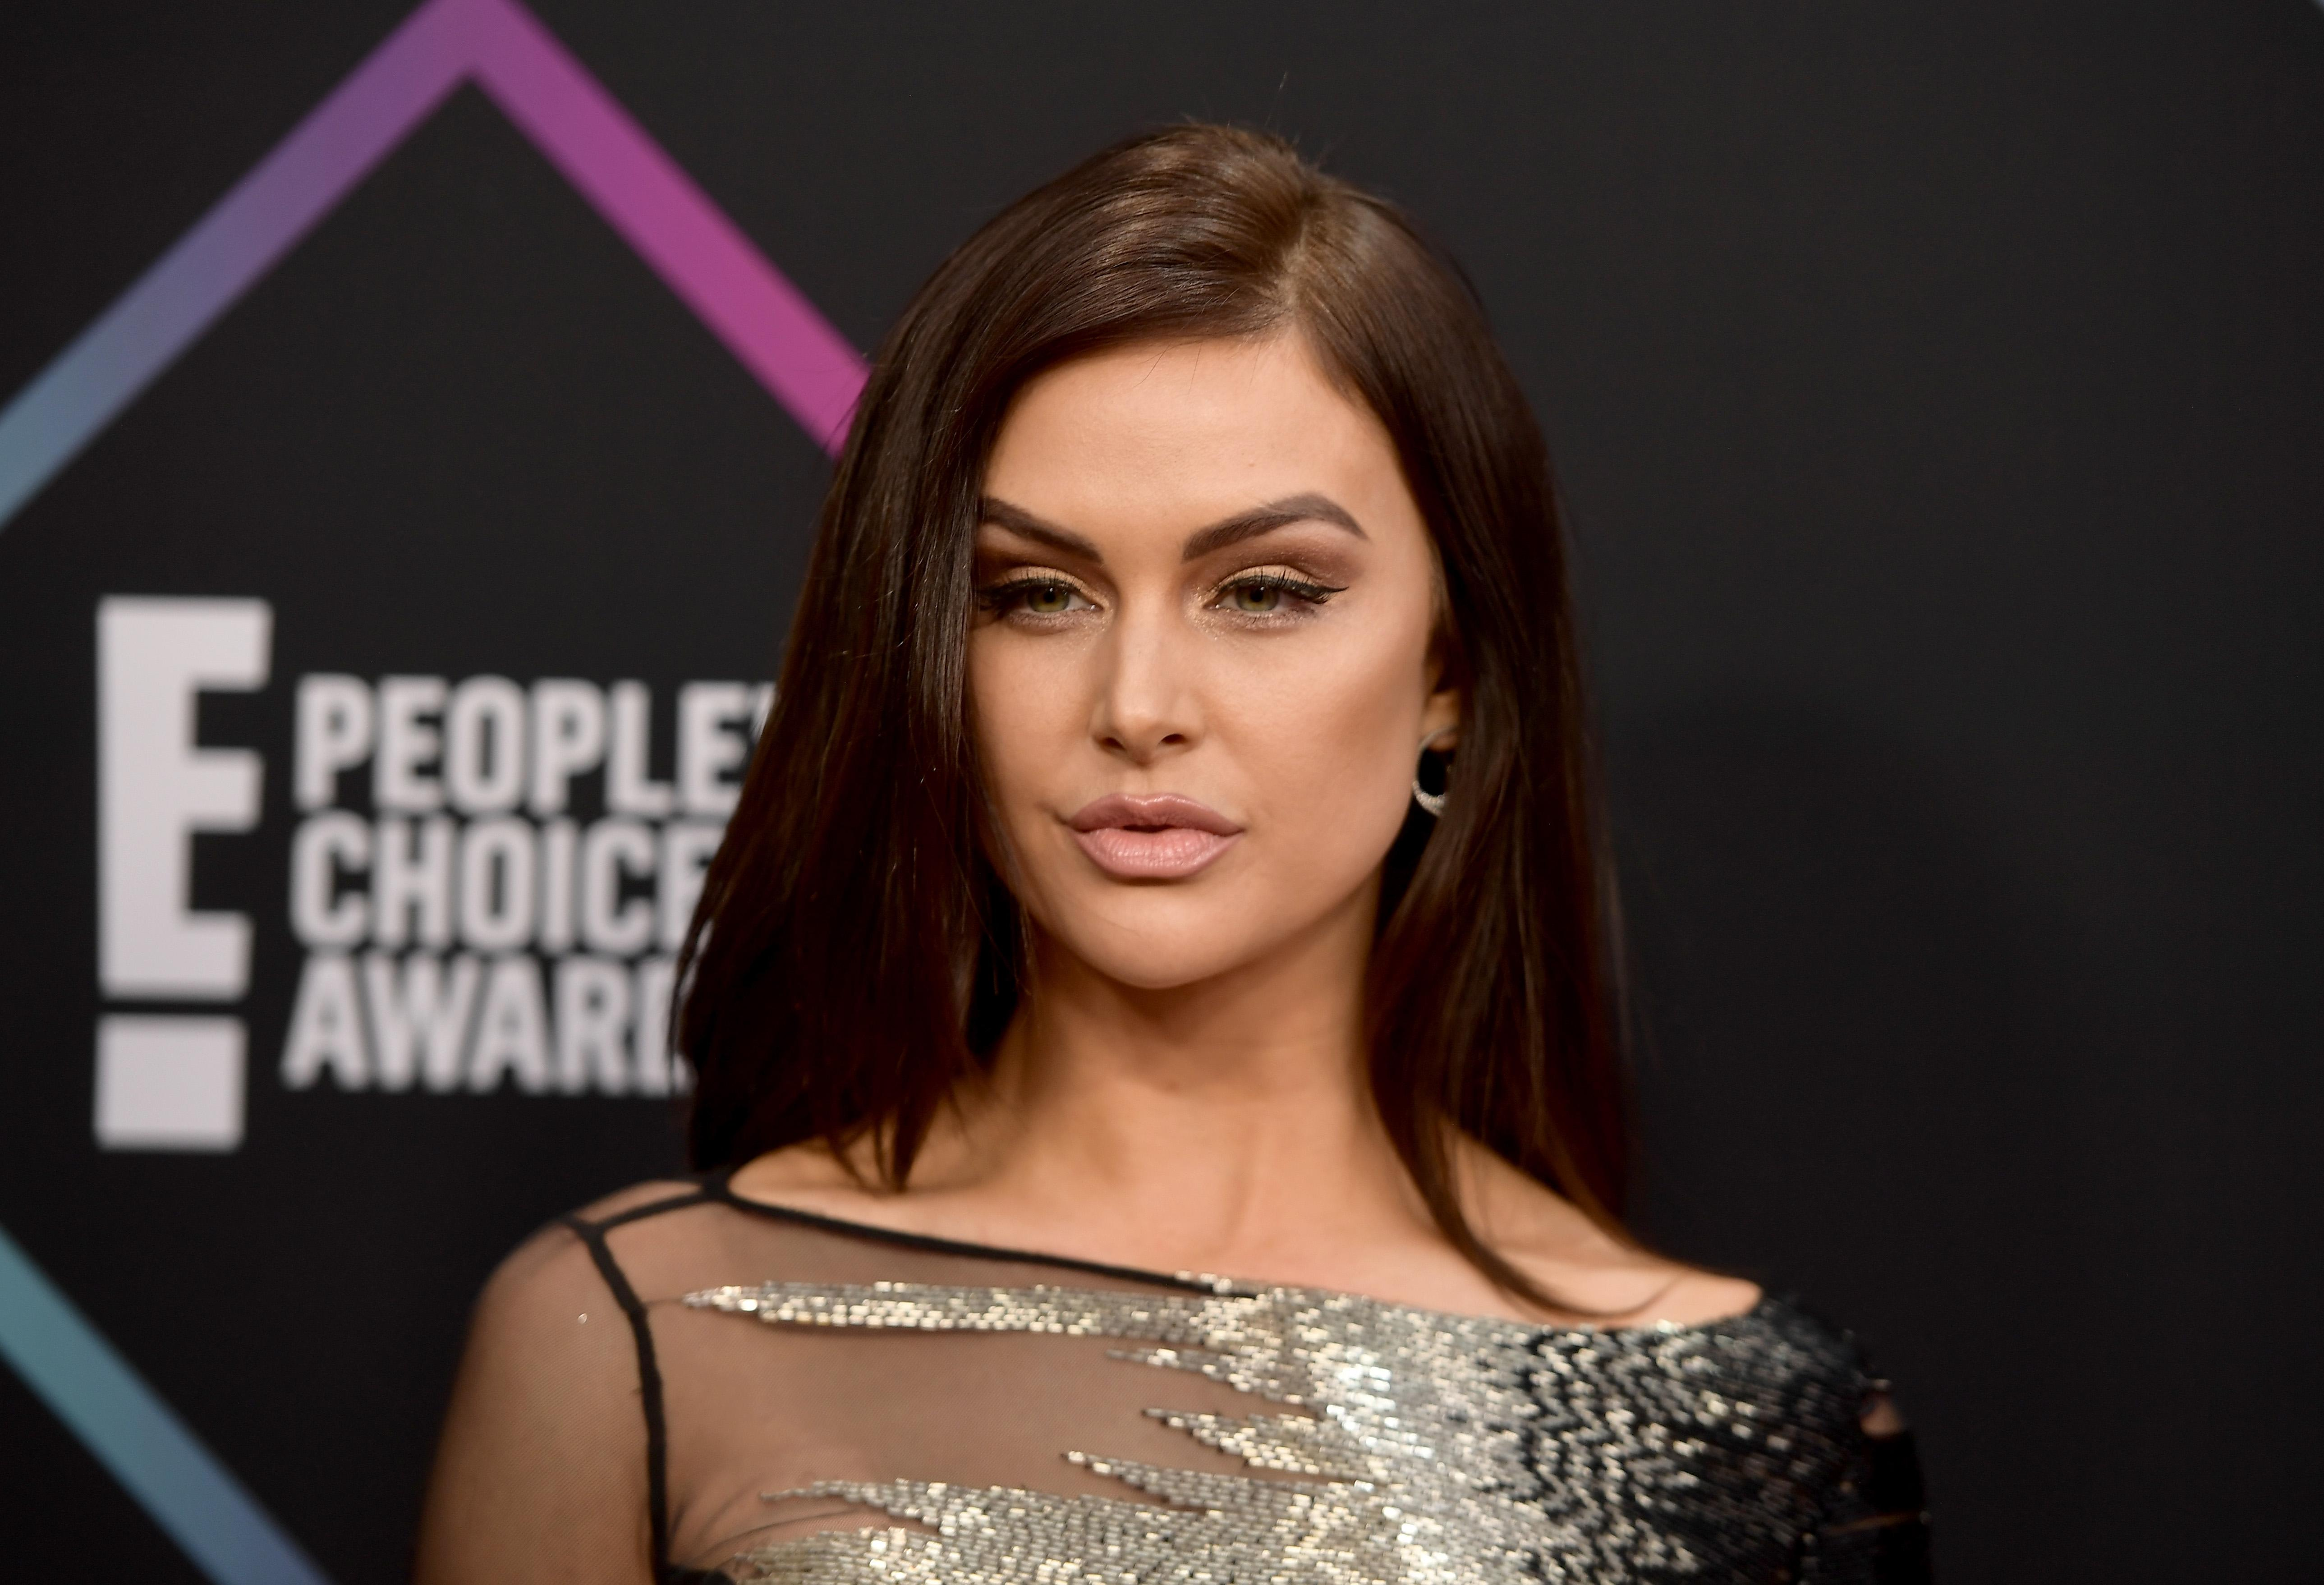 'Vanderpump Rules' Star Lala Kent Says She Is An Alcoholic